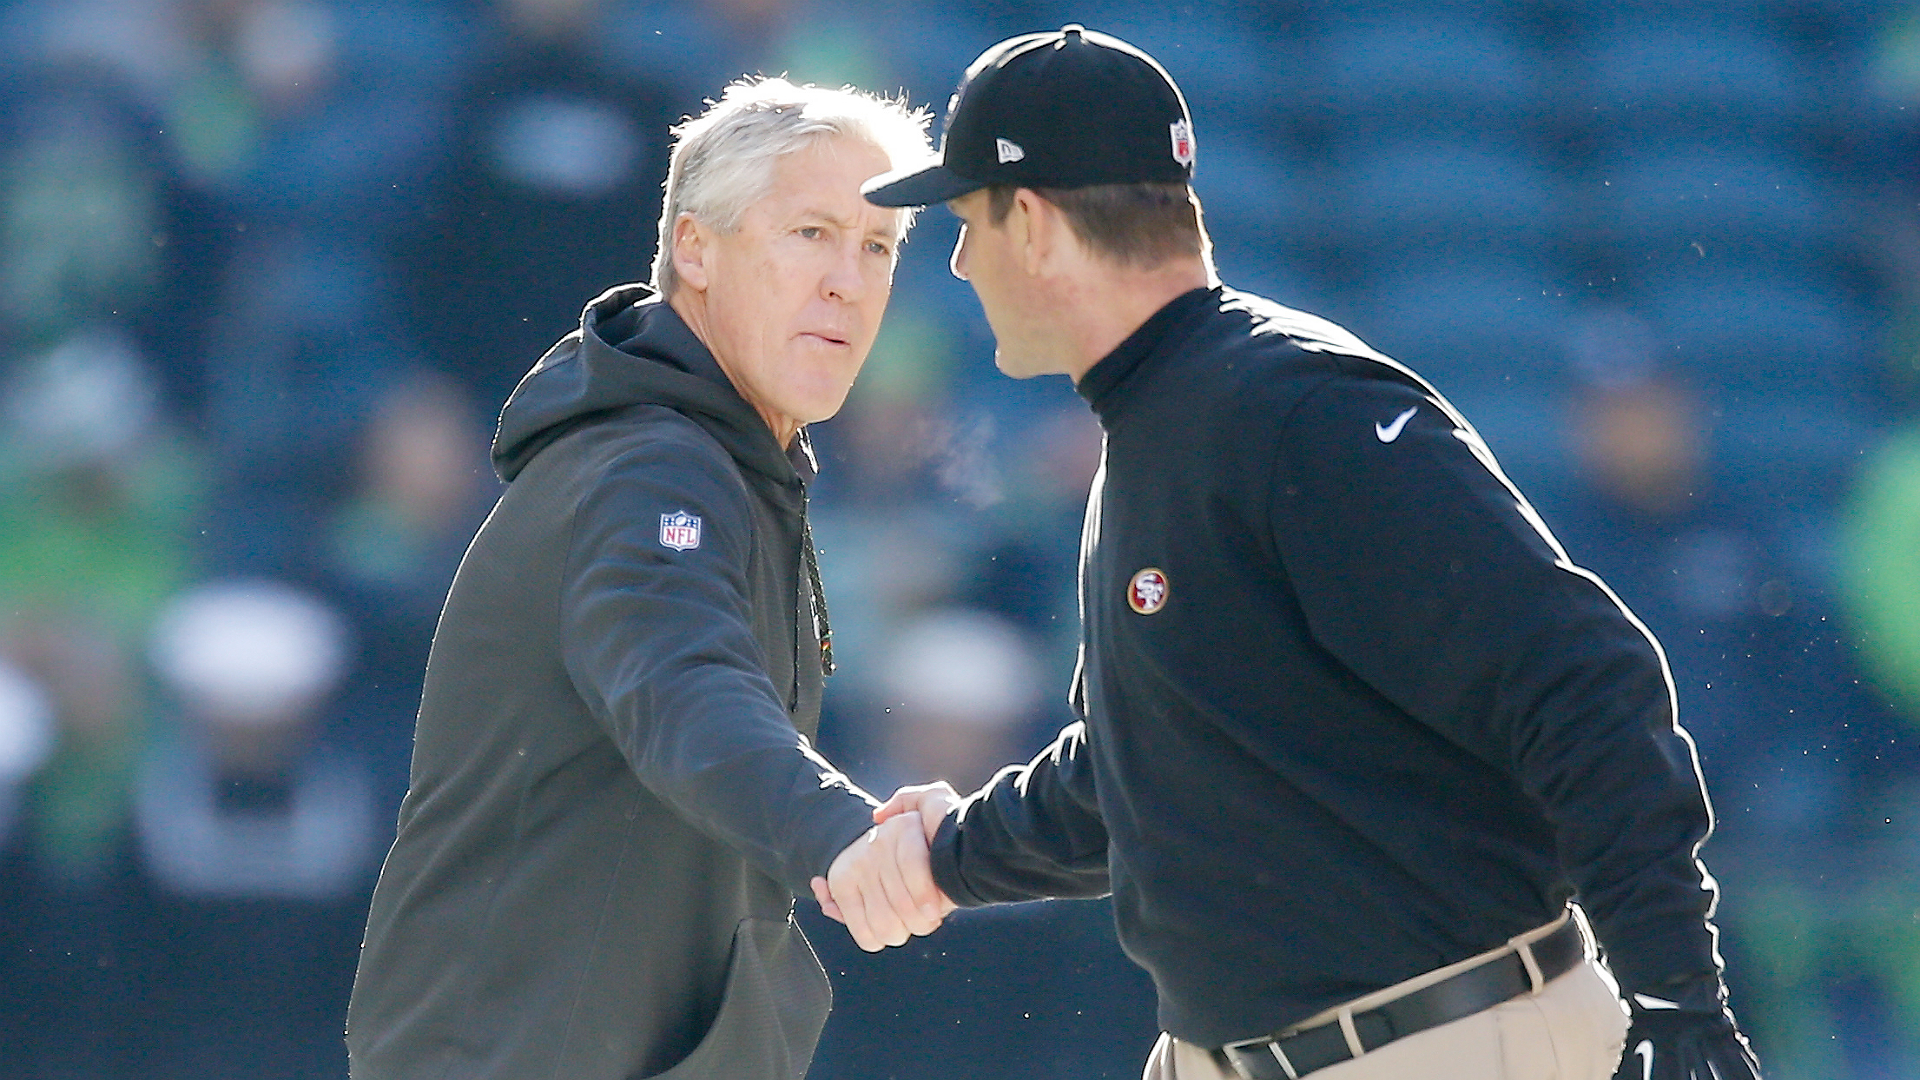 Pete-Carroll-Jim-Harbaugh-022015-FTR-Getty.jpg